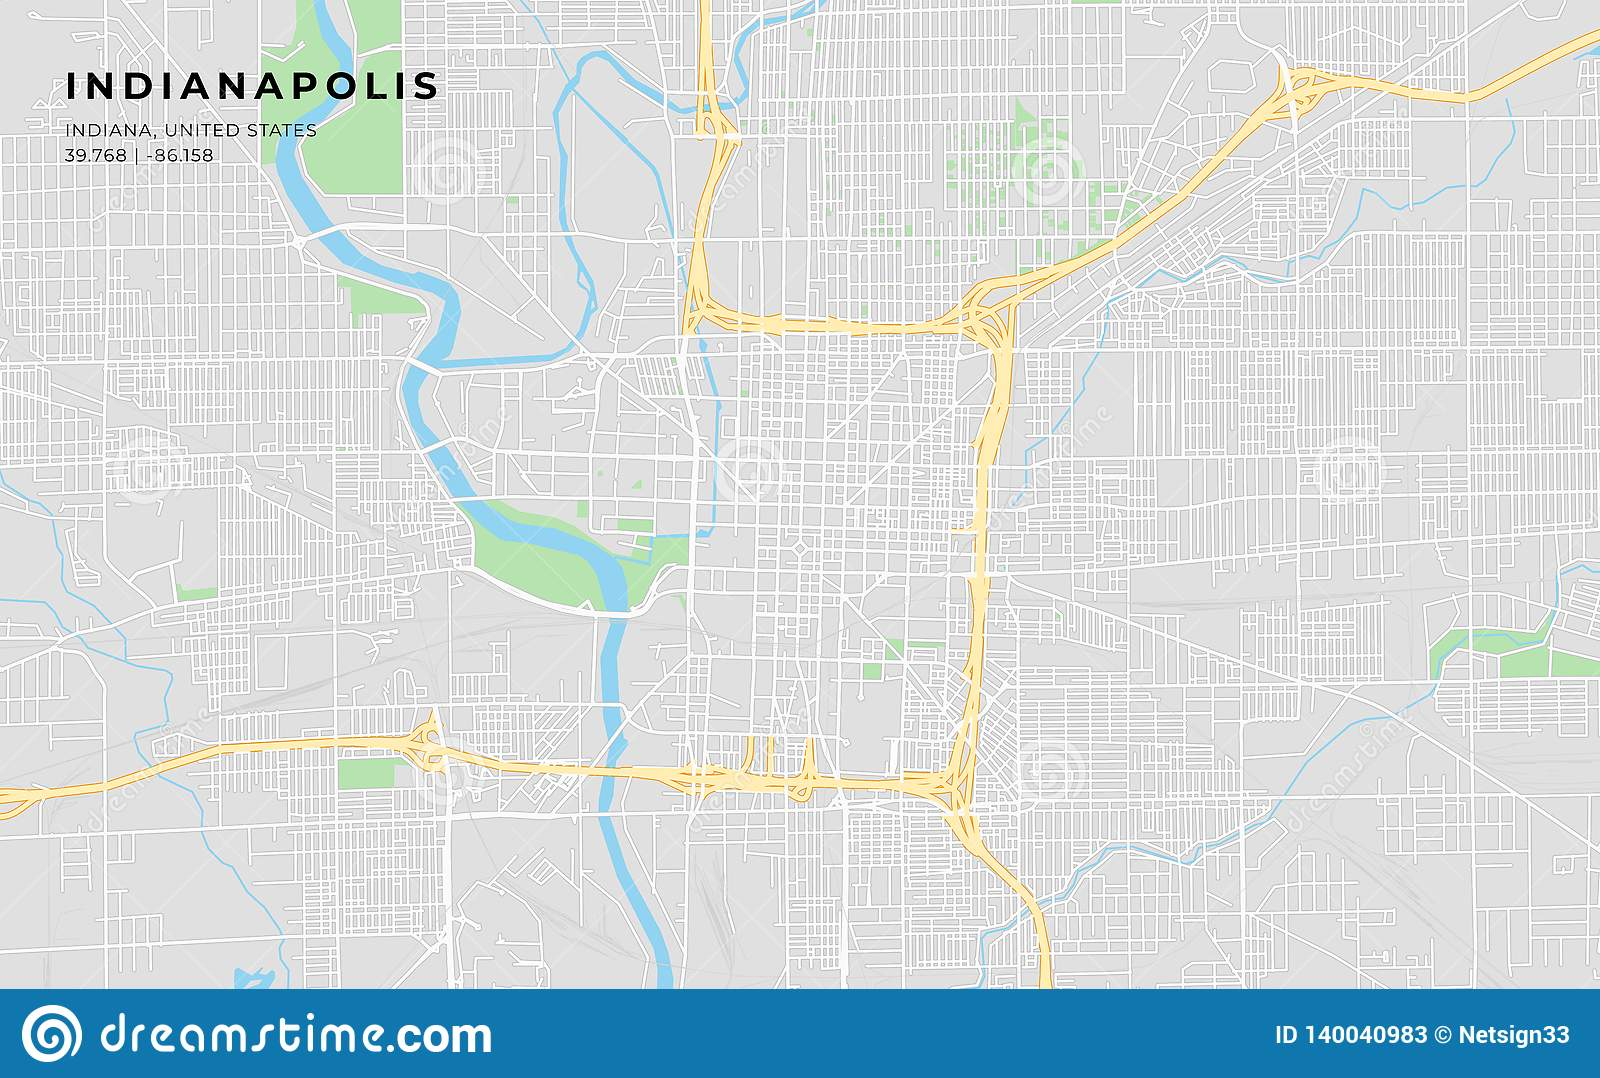 image regarding Printable Map of Indiana referred to as Printable Highway Map Of Indianapolis, Indiana Inventory Vector